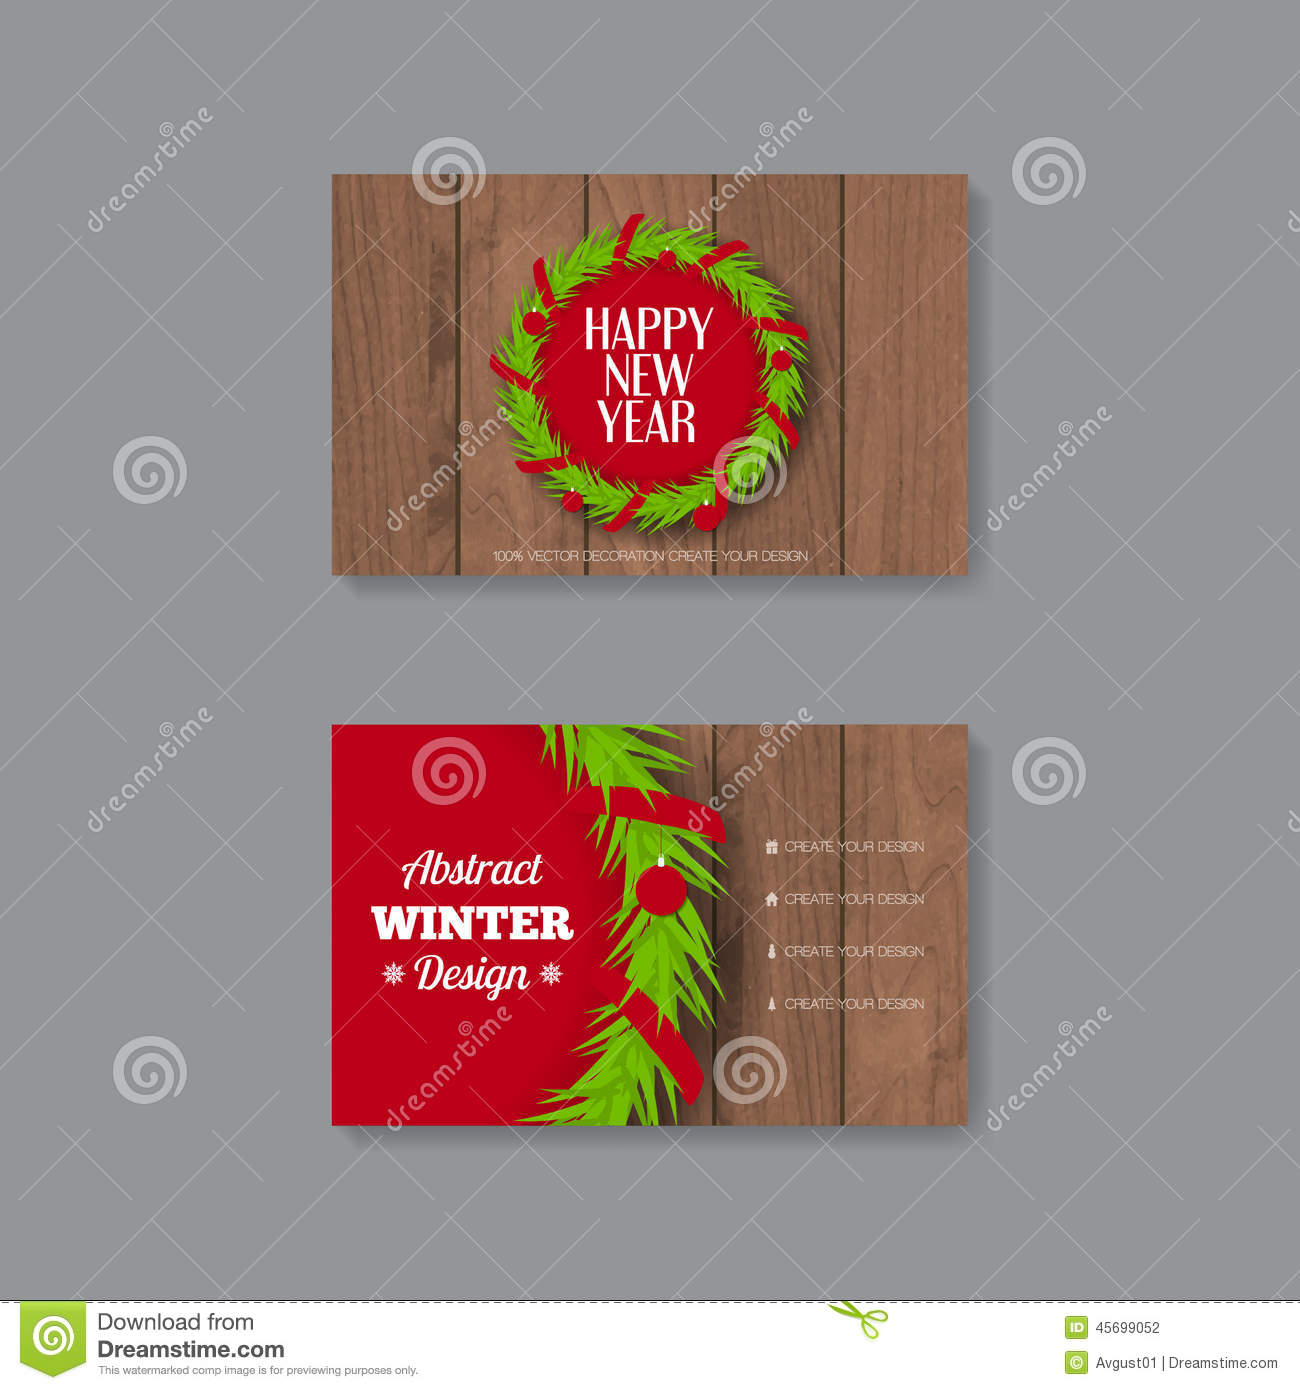 Business card template with christmas wreath stock vector download business card template with christmas wreath stock vector illustration of marketing abstract friedricerecipe Choice Image